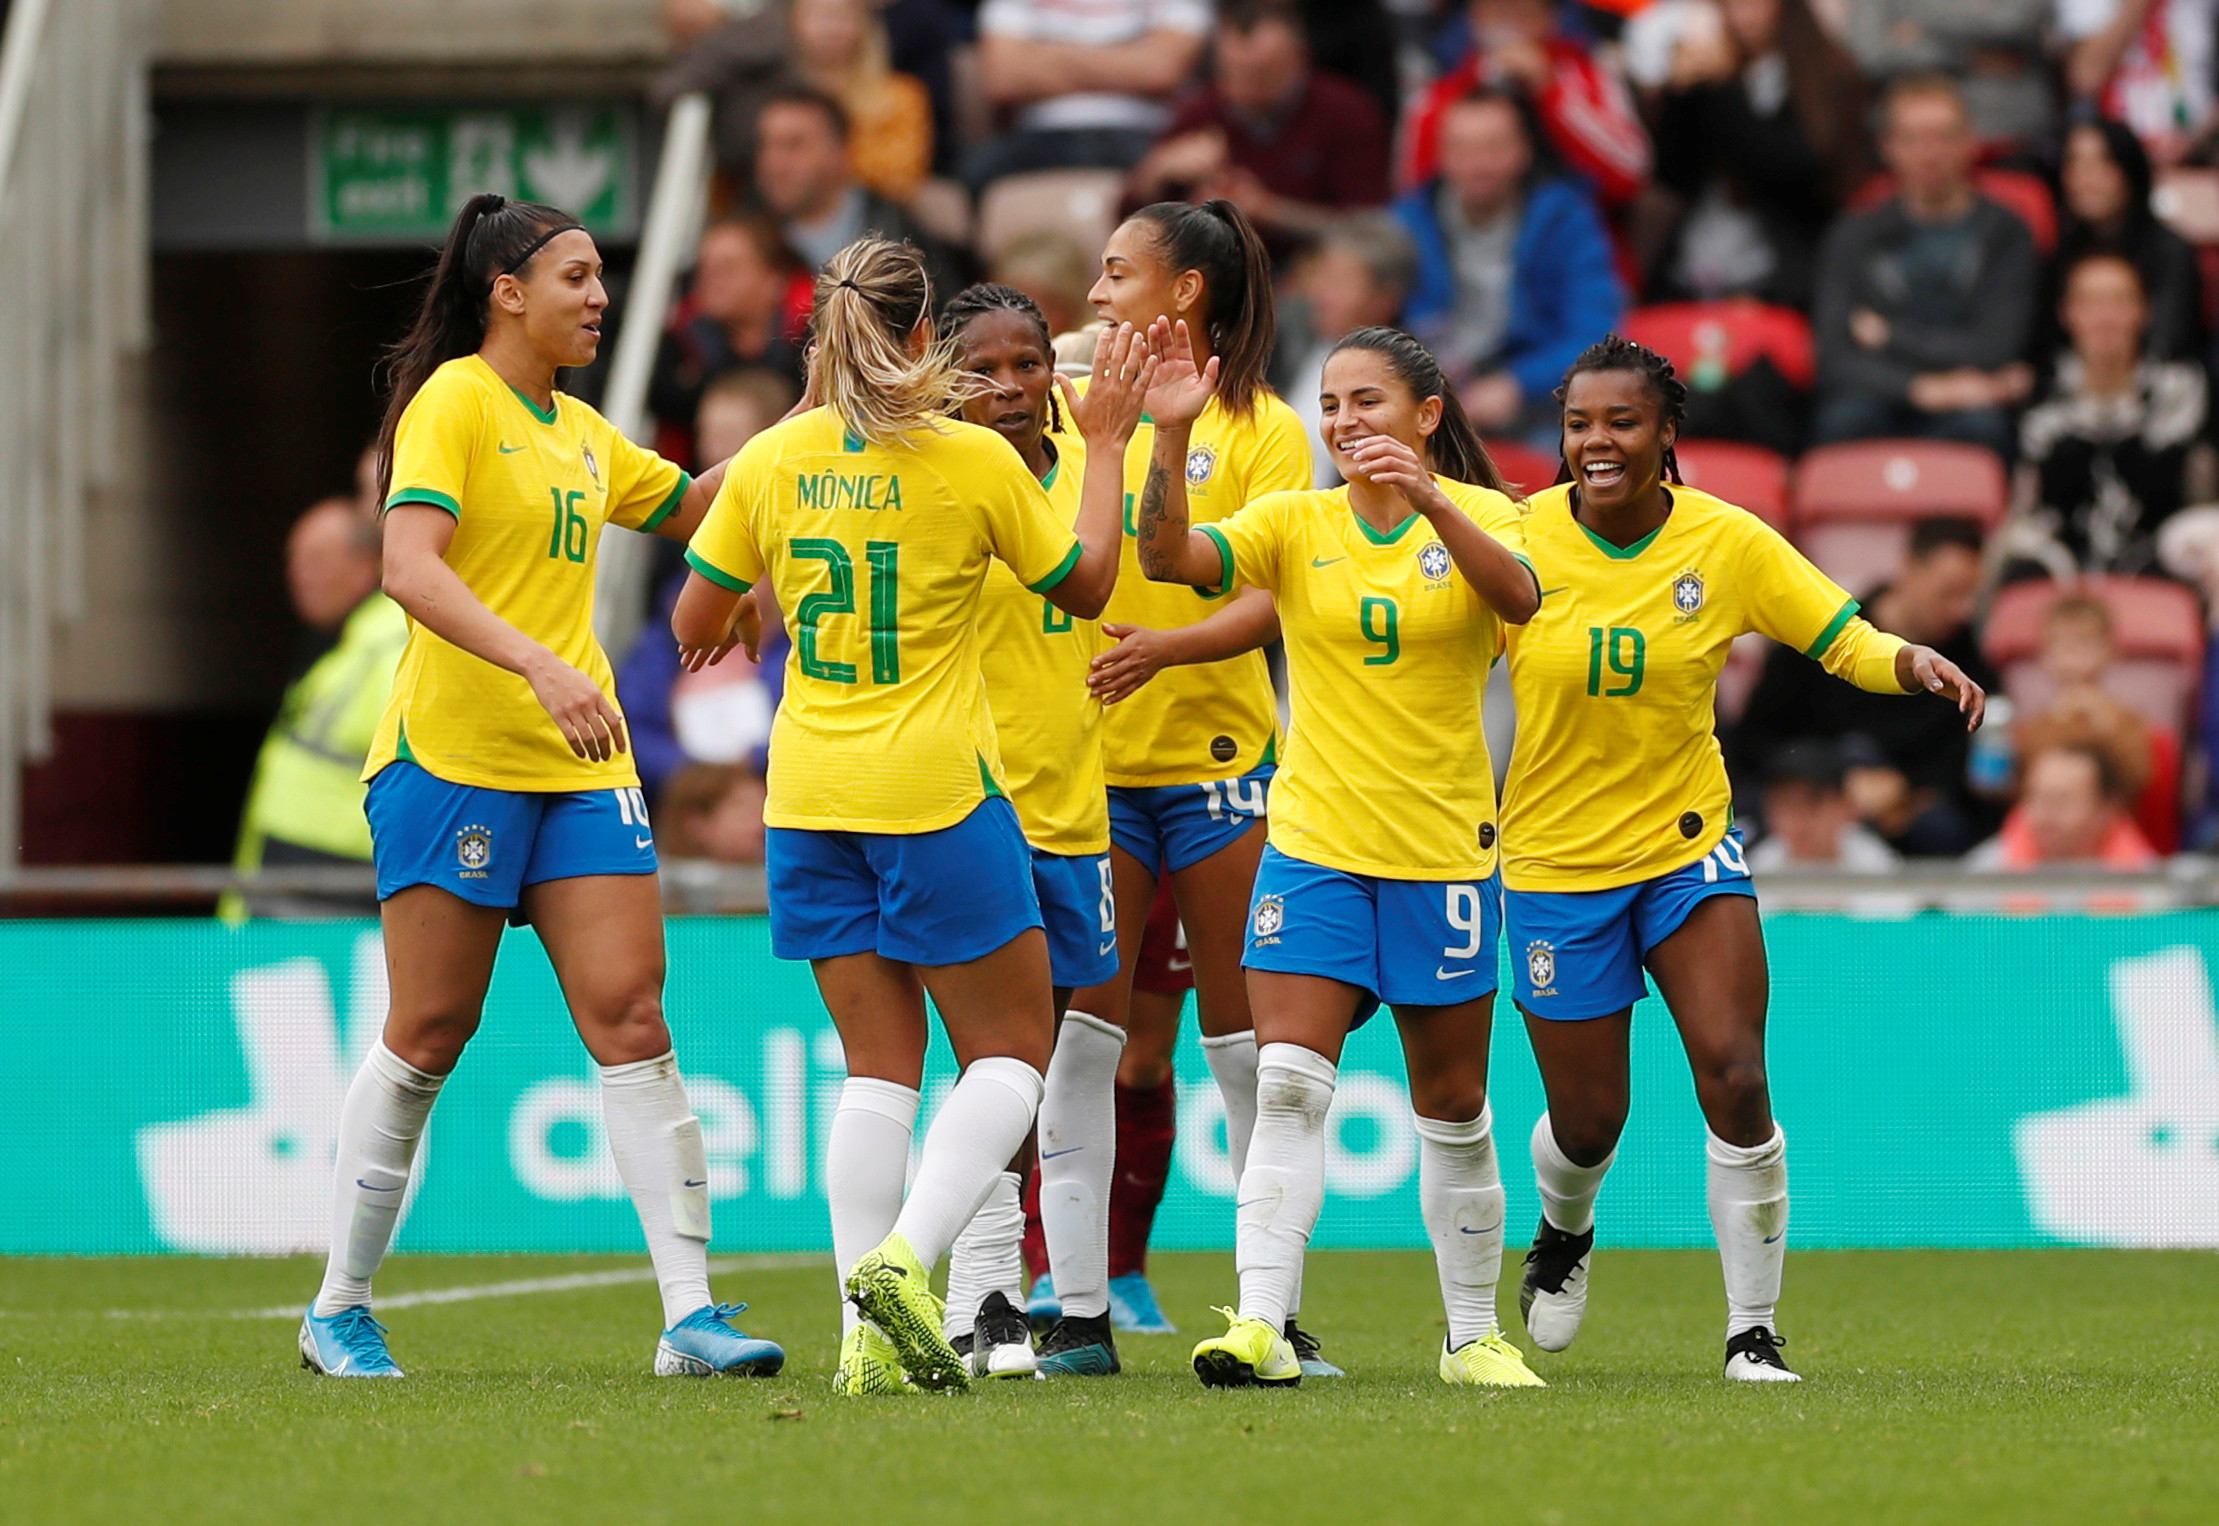 Brazil announces equal pay for men's and women's national soccer teams